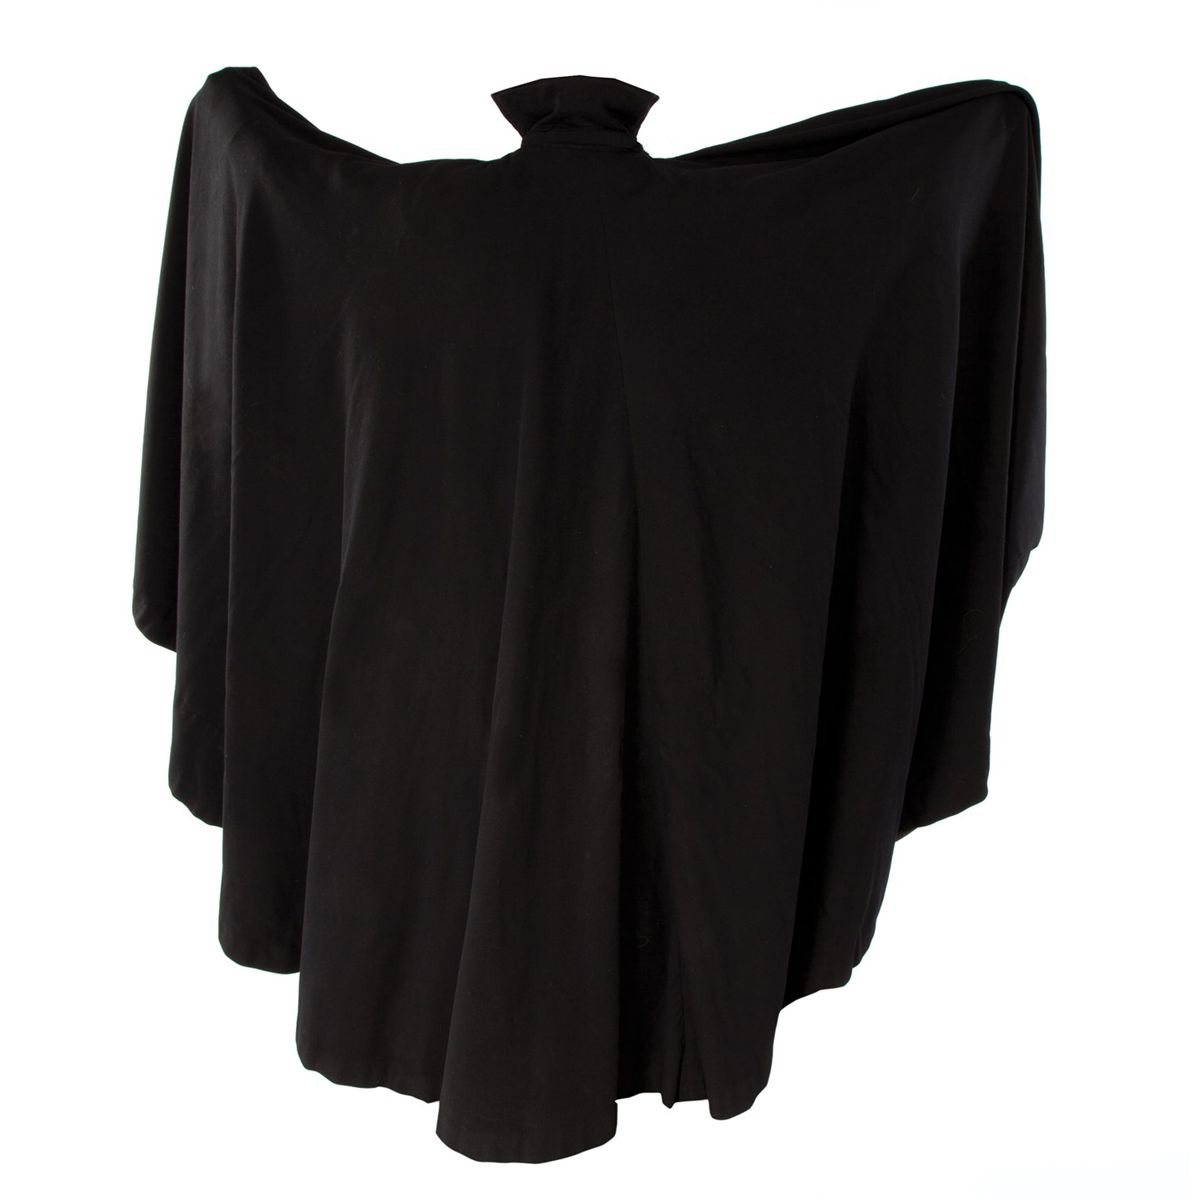 bela lugosi s dracula cape fails to sell at auction the